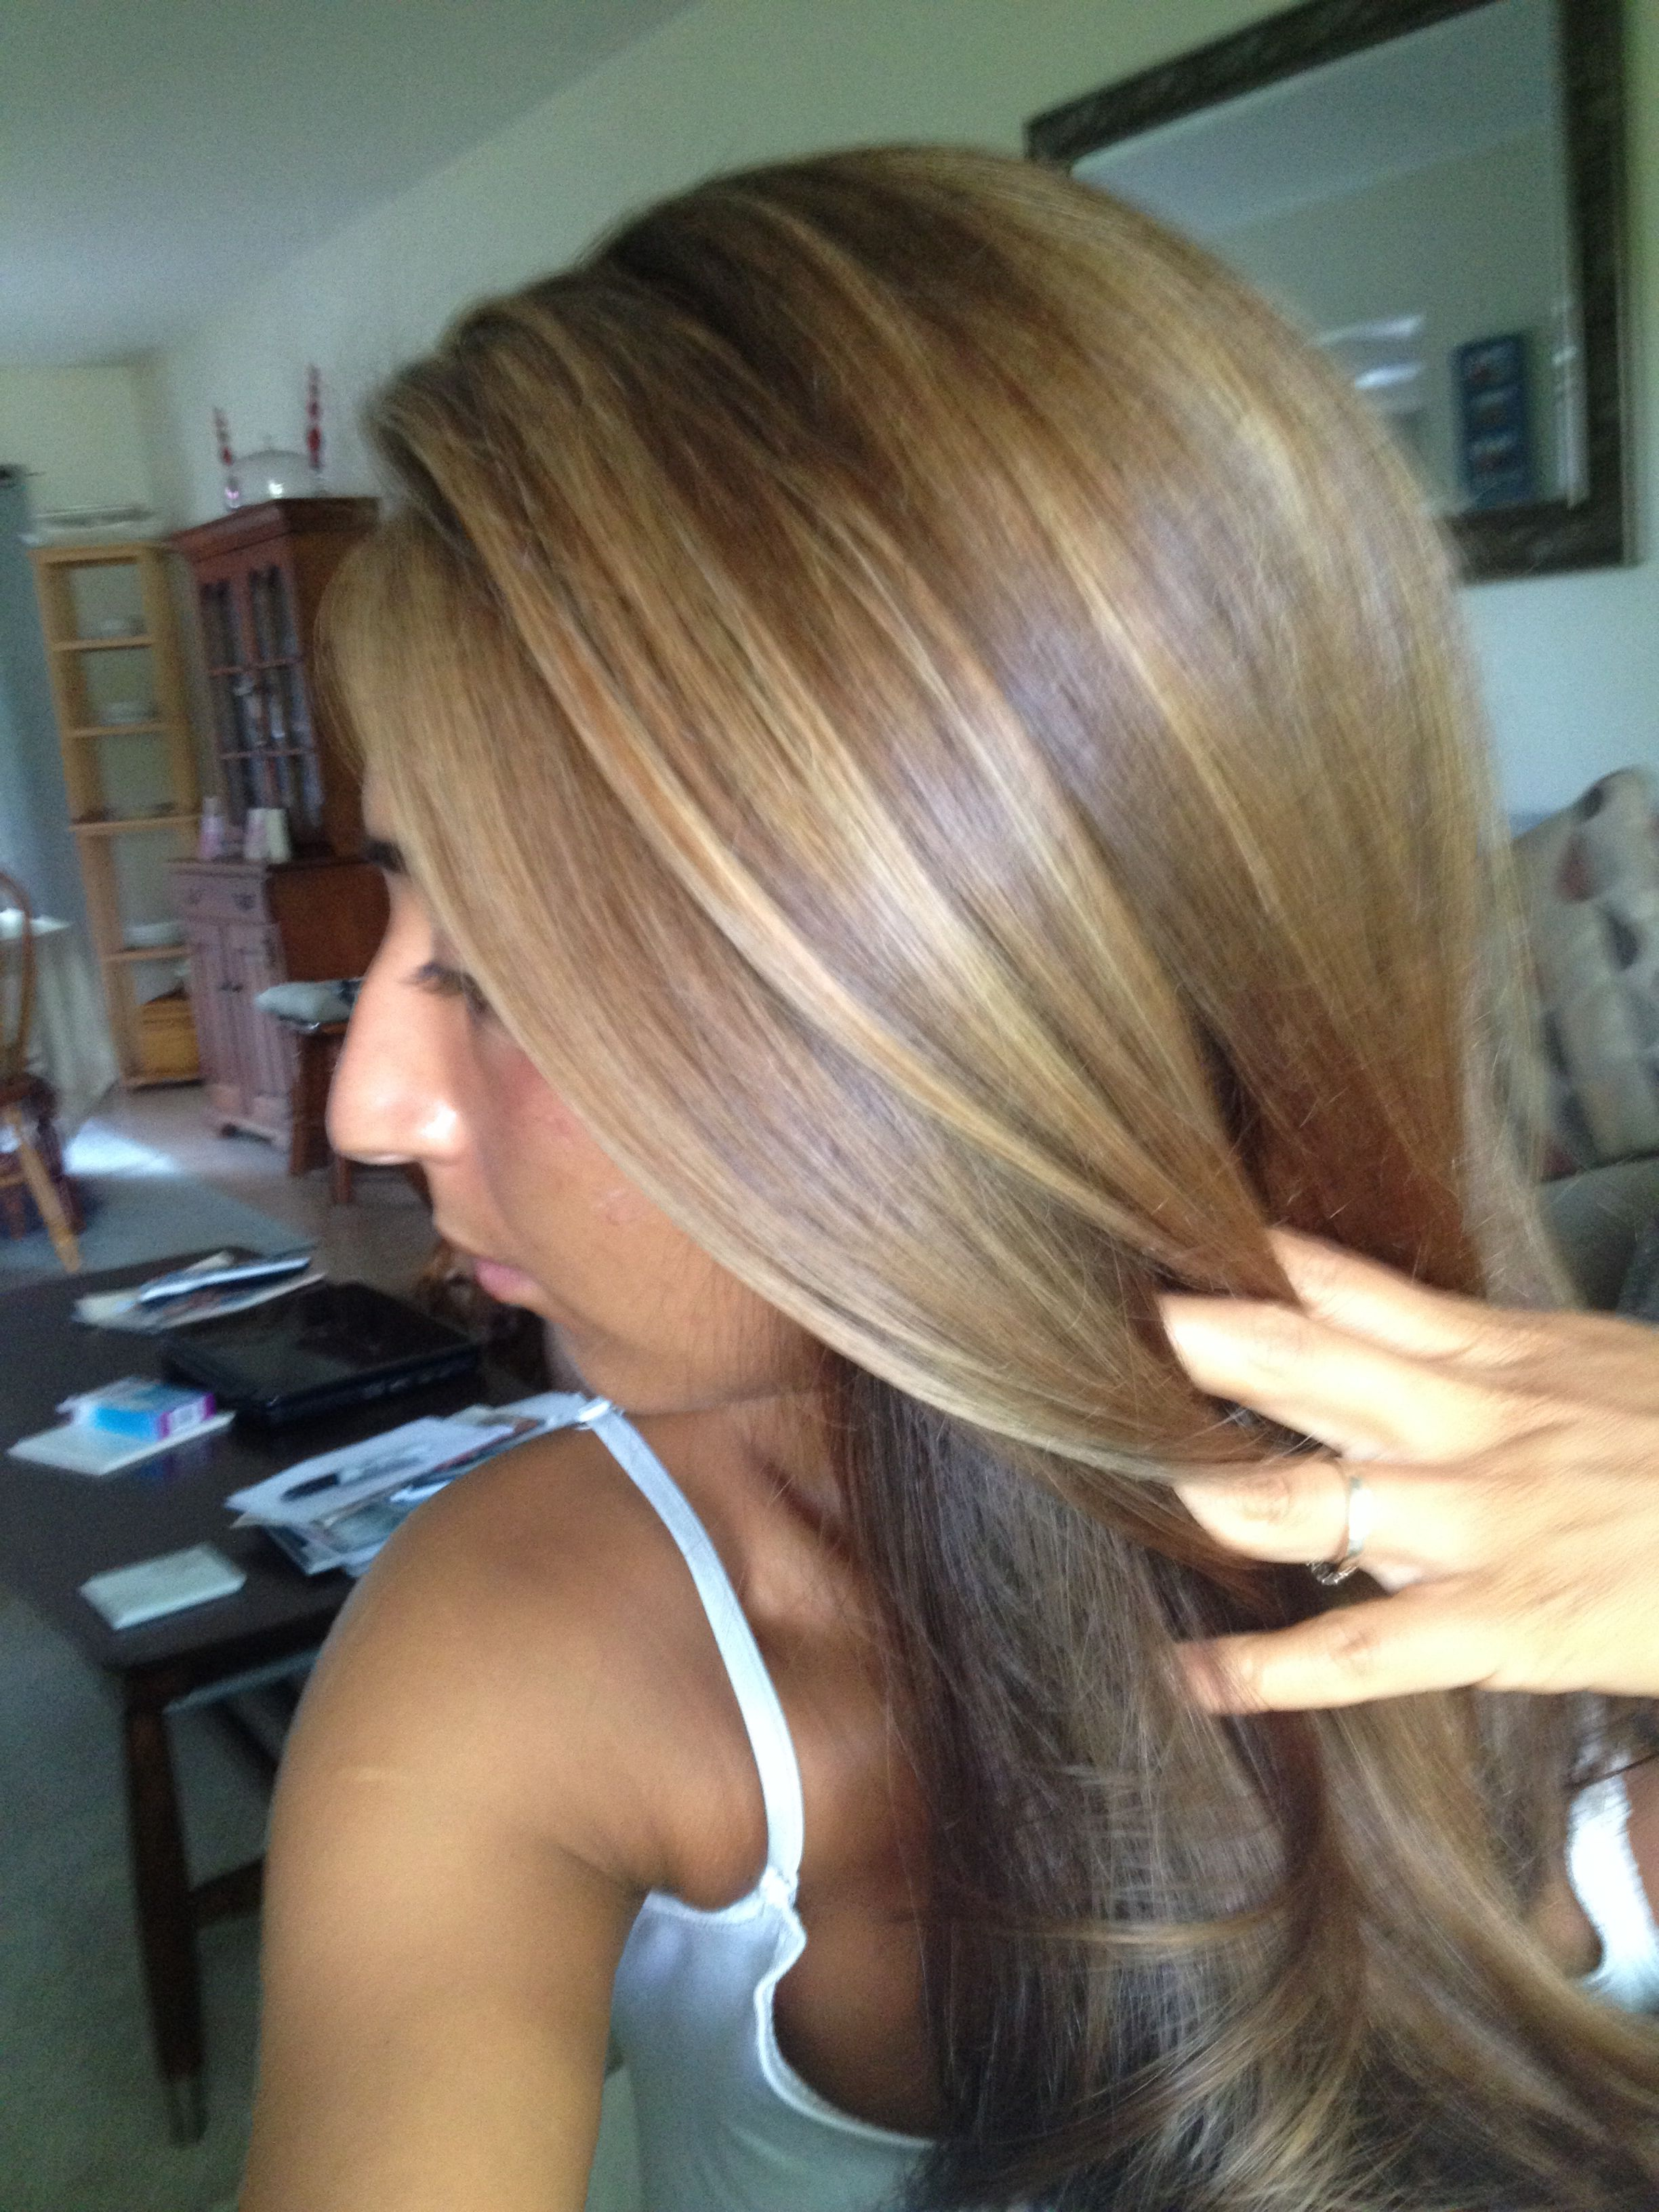 Highlights 7g And 9v Redken Glazes By Me And On Me Shades Eq